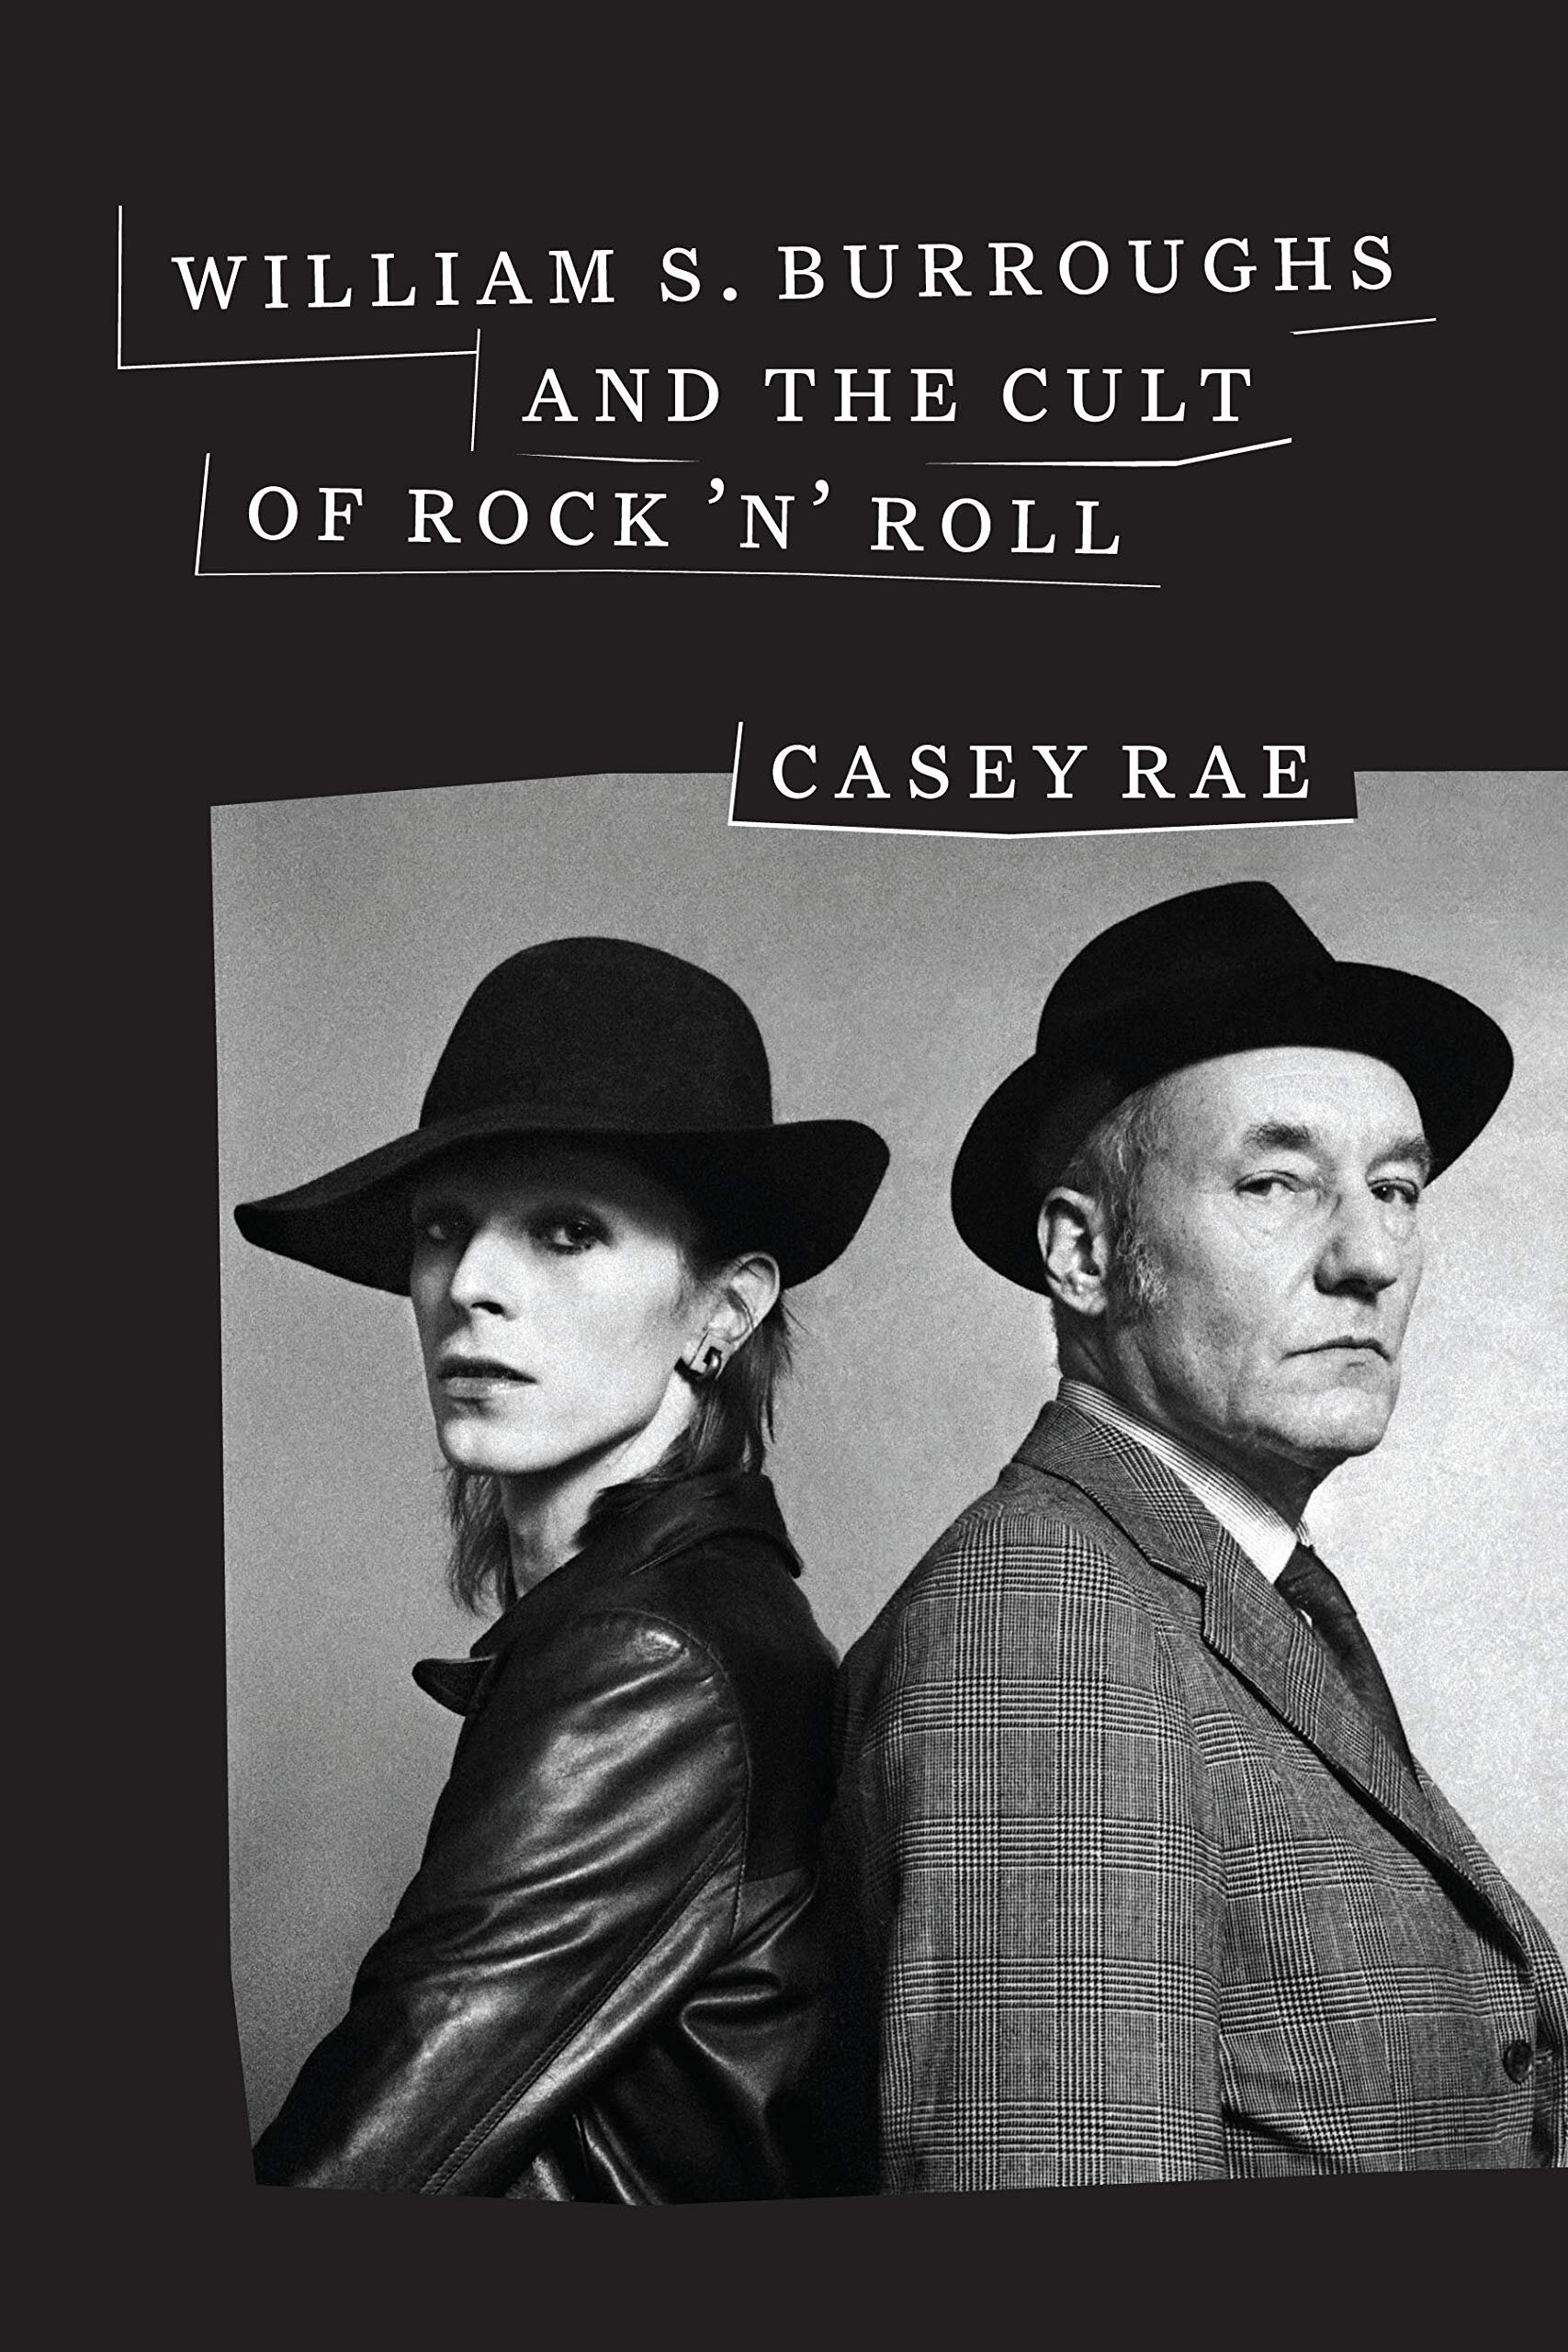 William Burroughs and the Cult of Rock 'n' RollCasey Rae - LINKSOfficial SiteTwitterAmazon